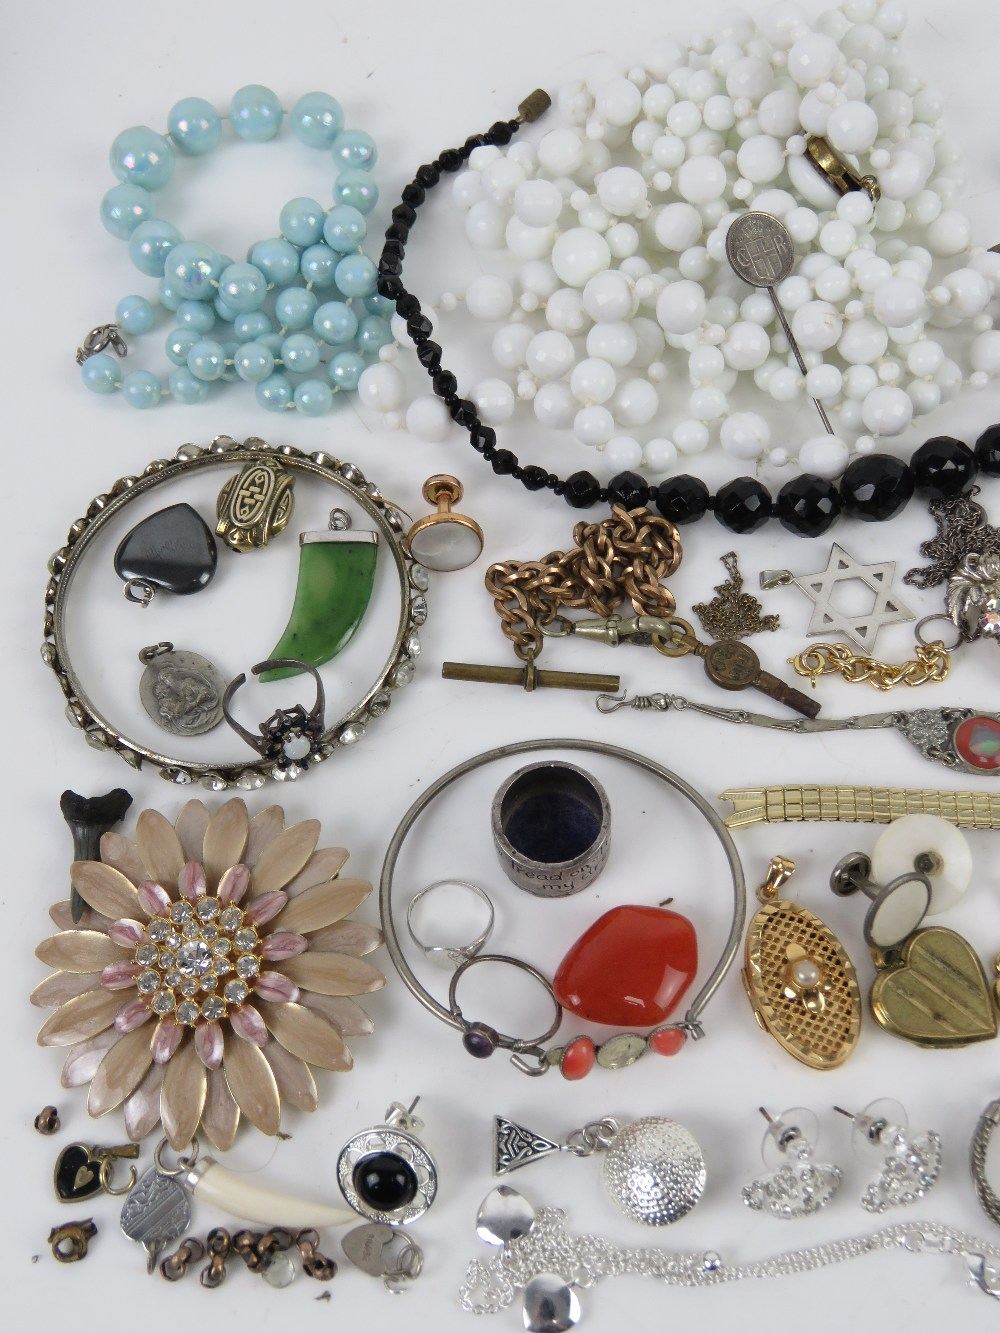 A quantity of assorted jewellery including silver signet ring, silver heart padlock clasp, - Image 2 of 3